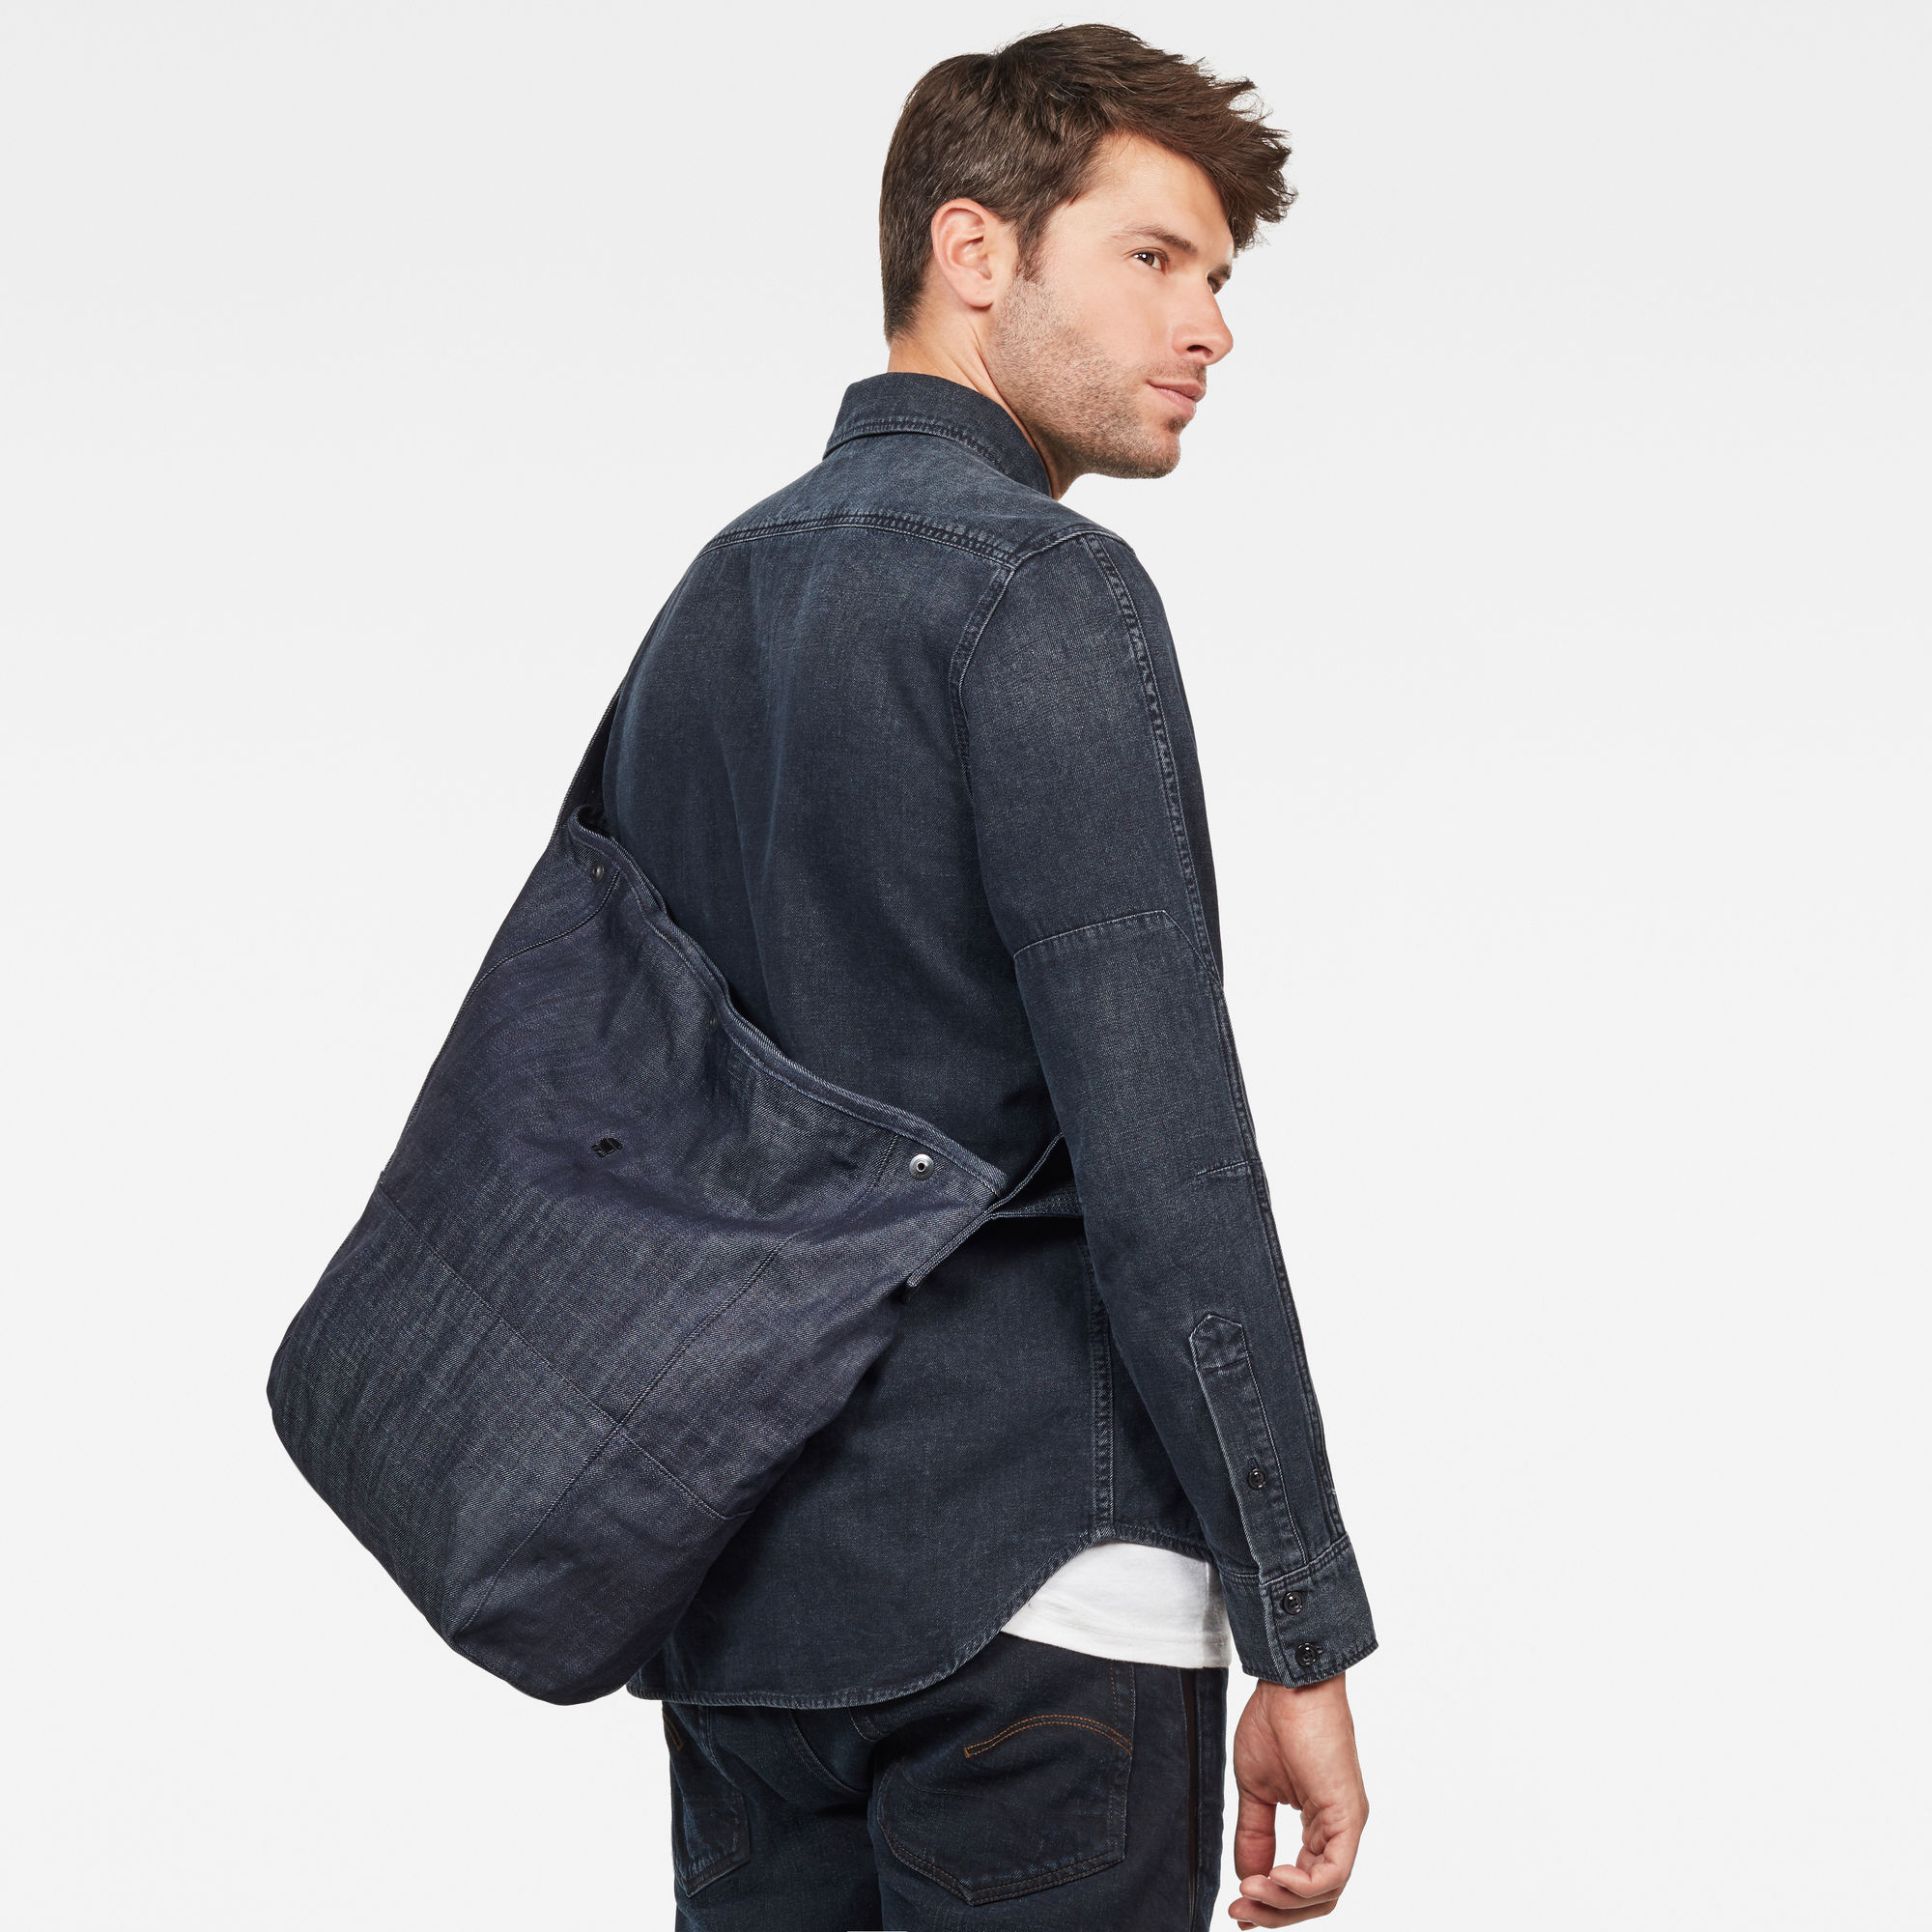 Khoma Denim Shopper-tas